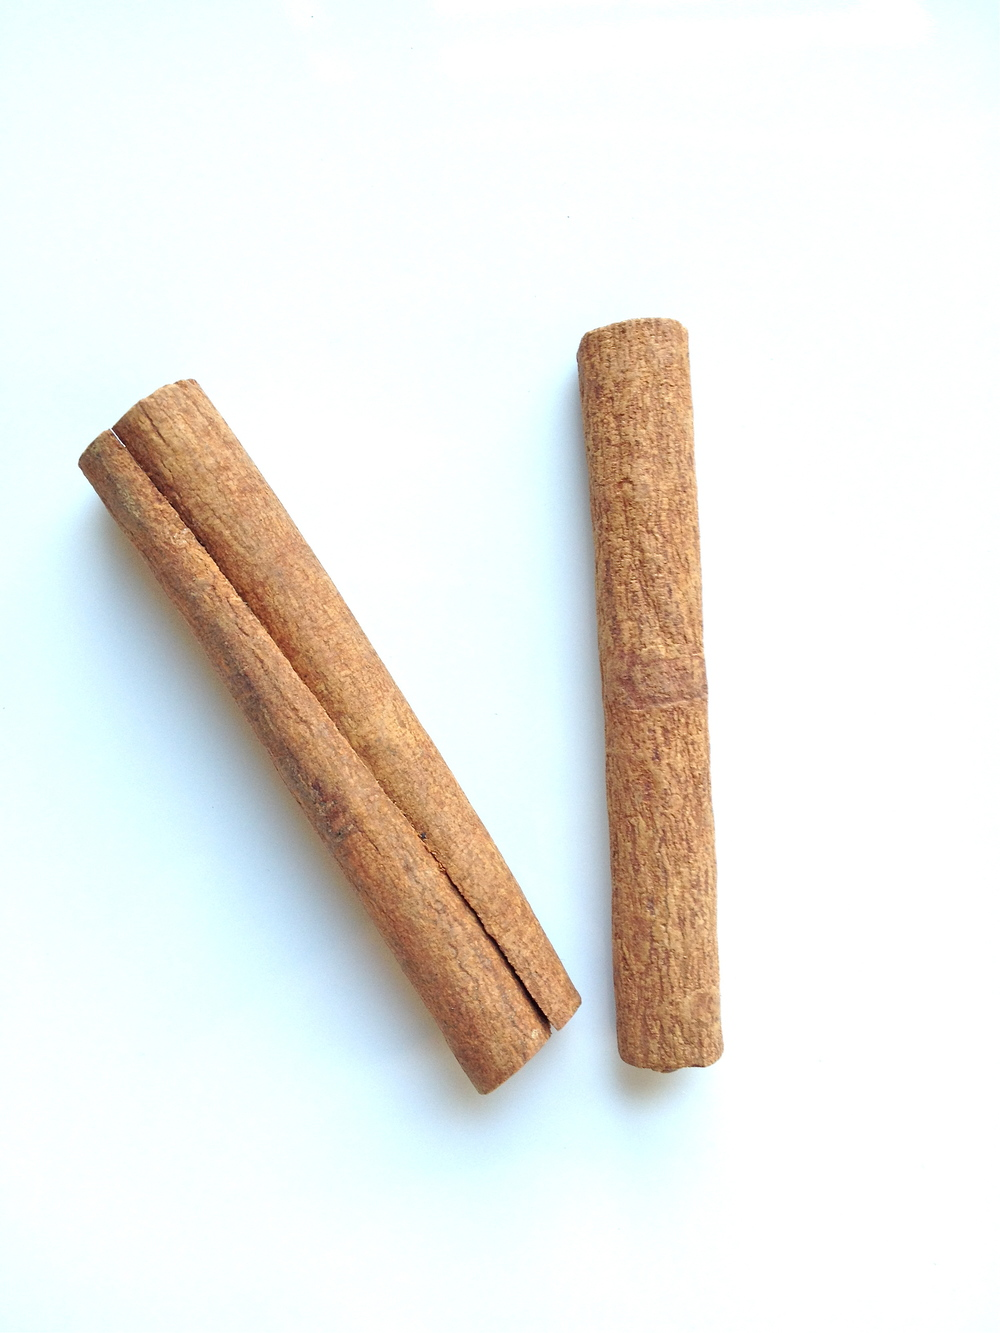 Cinnamon Sticks - Cassia